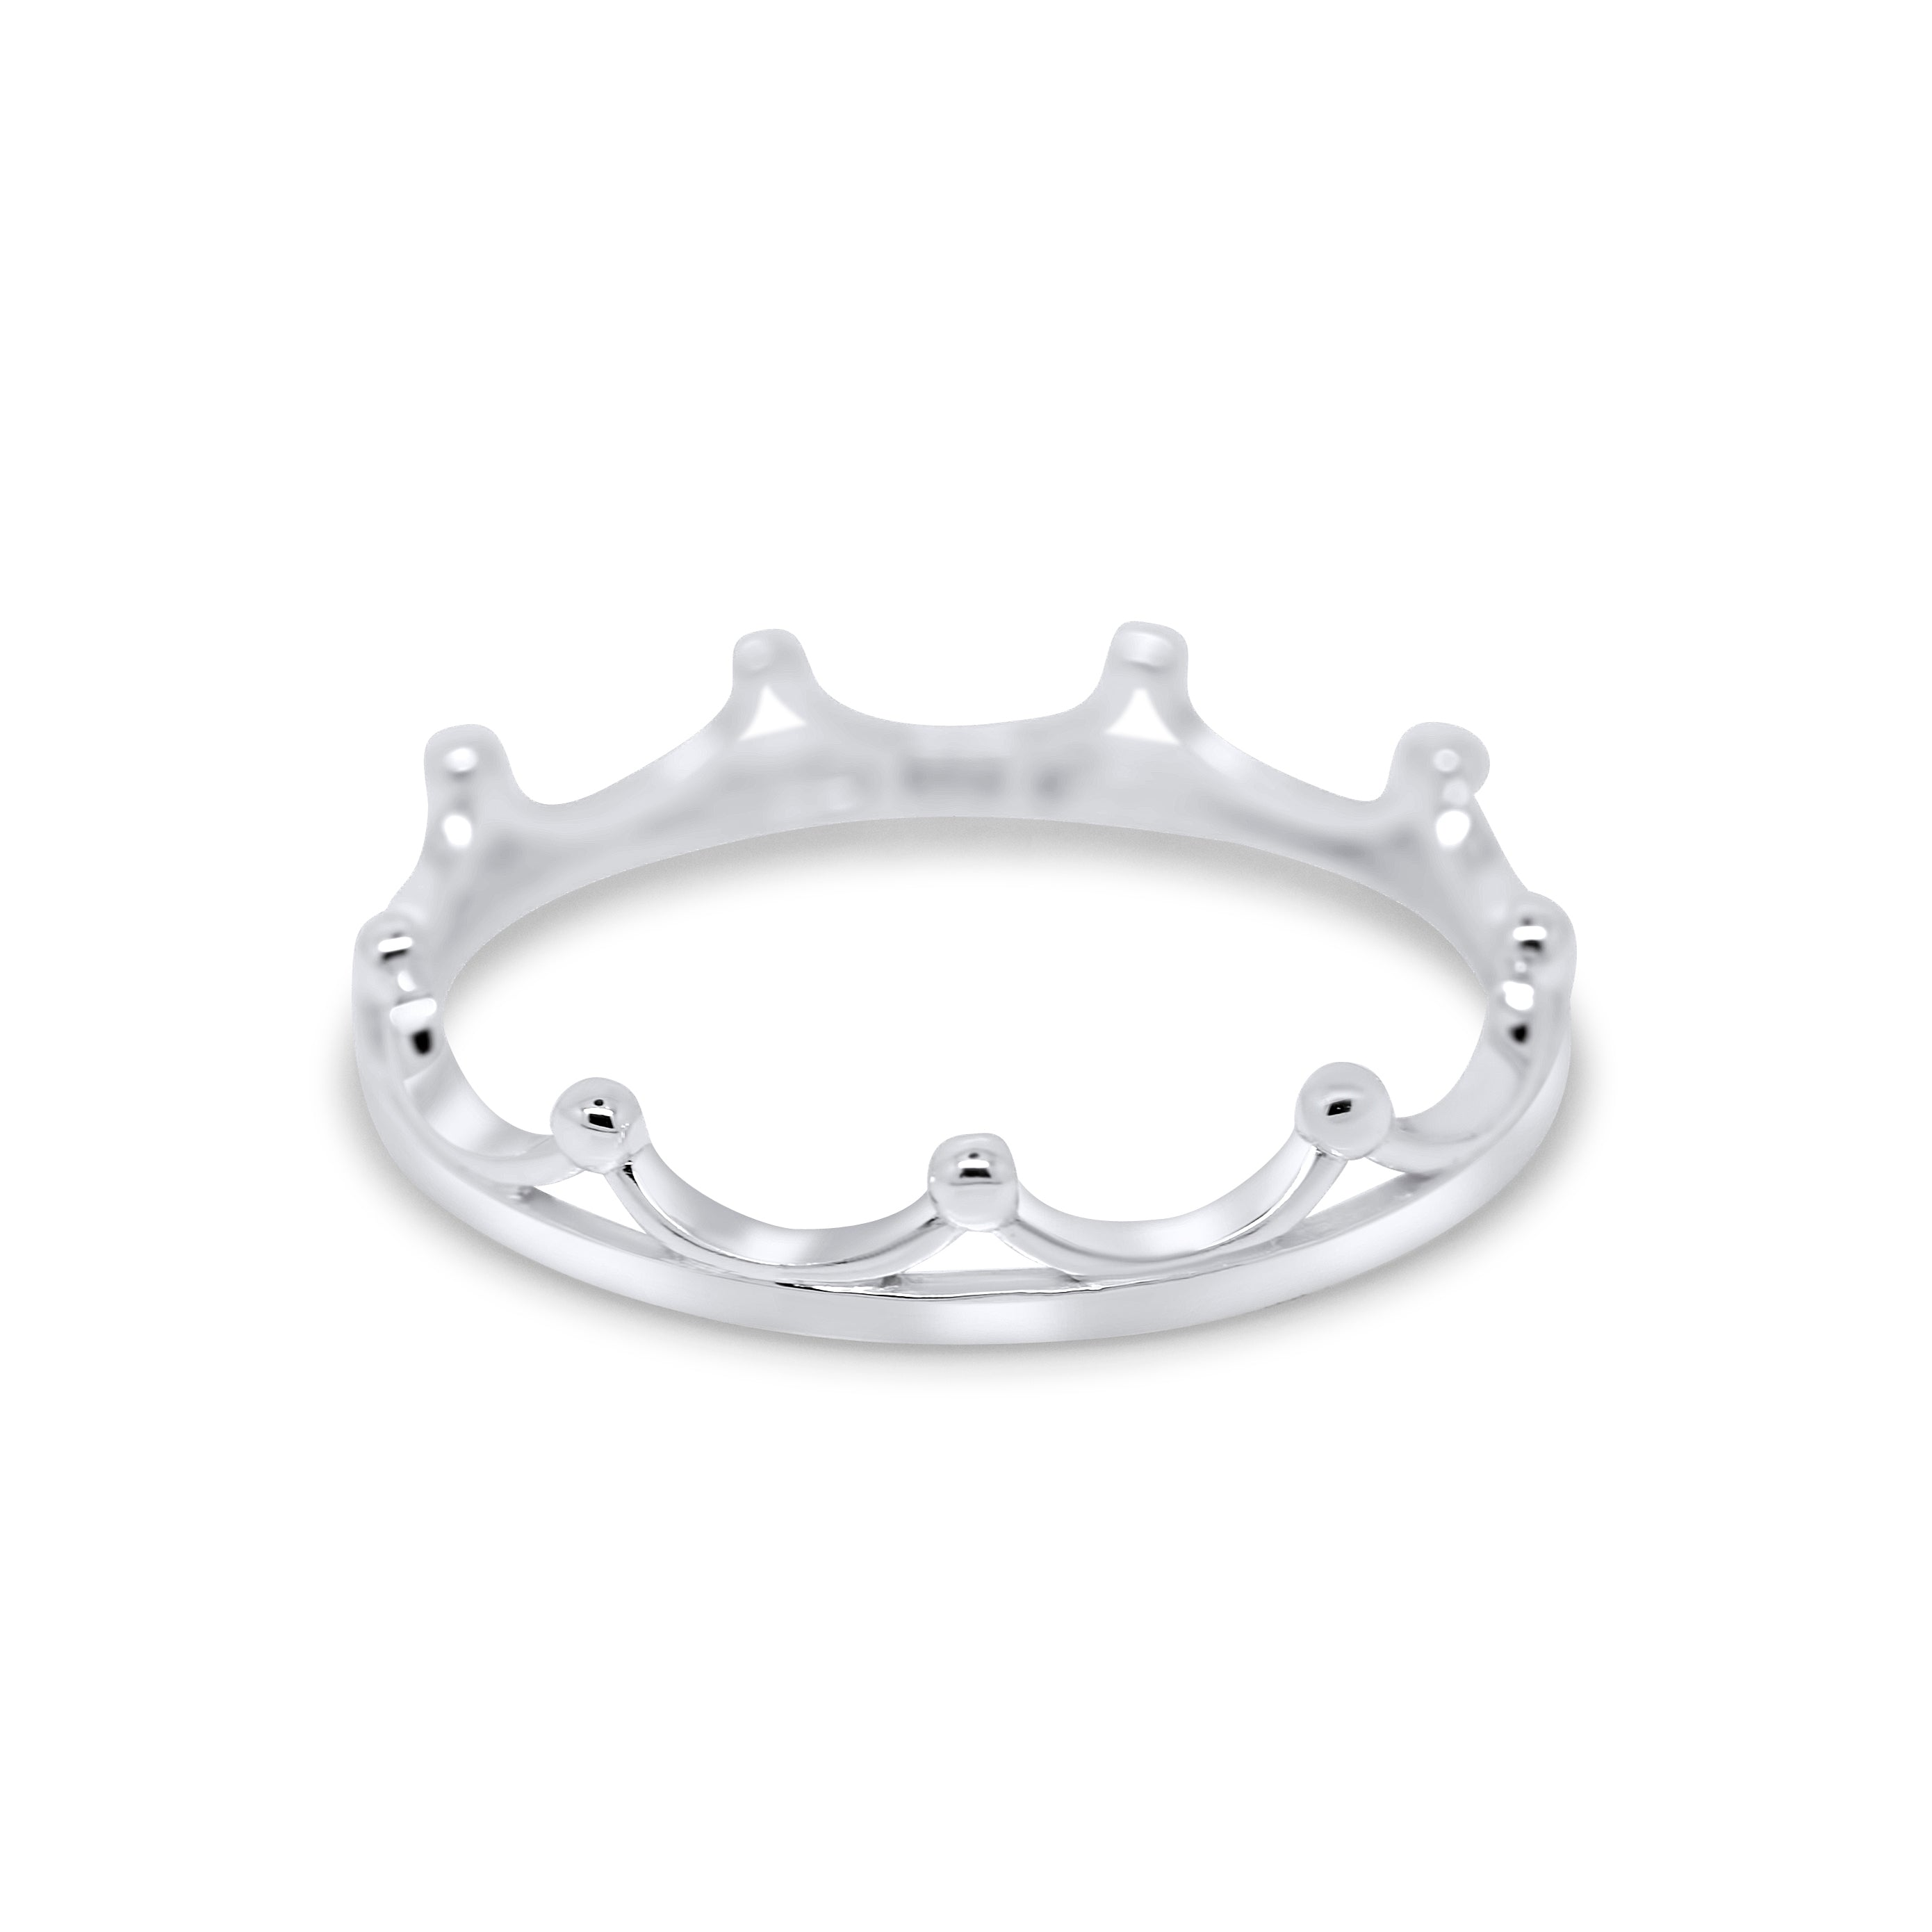 Maria Crown 925 Sterling Silver Ring